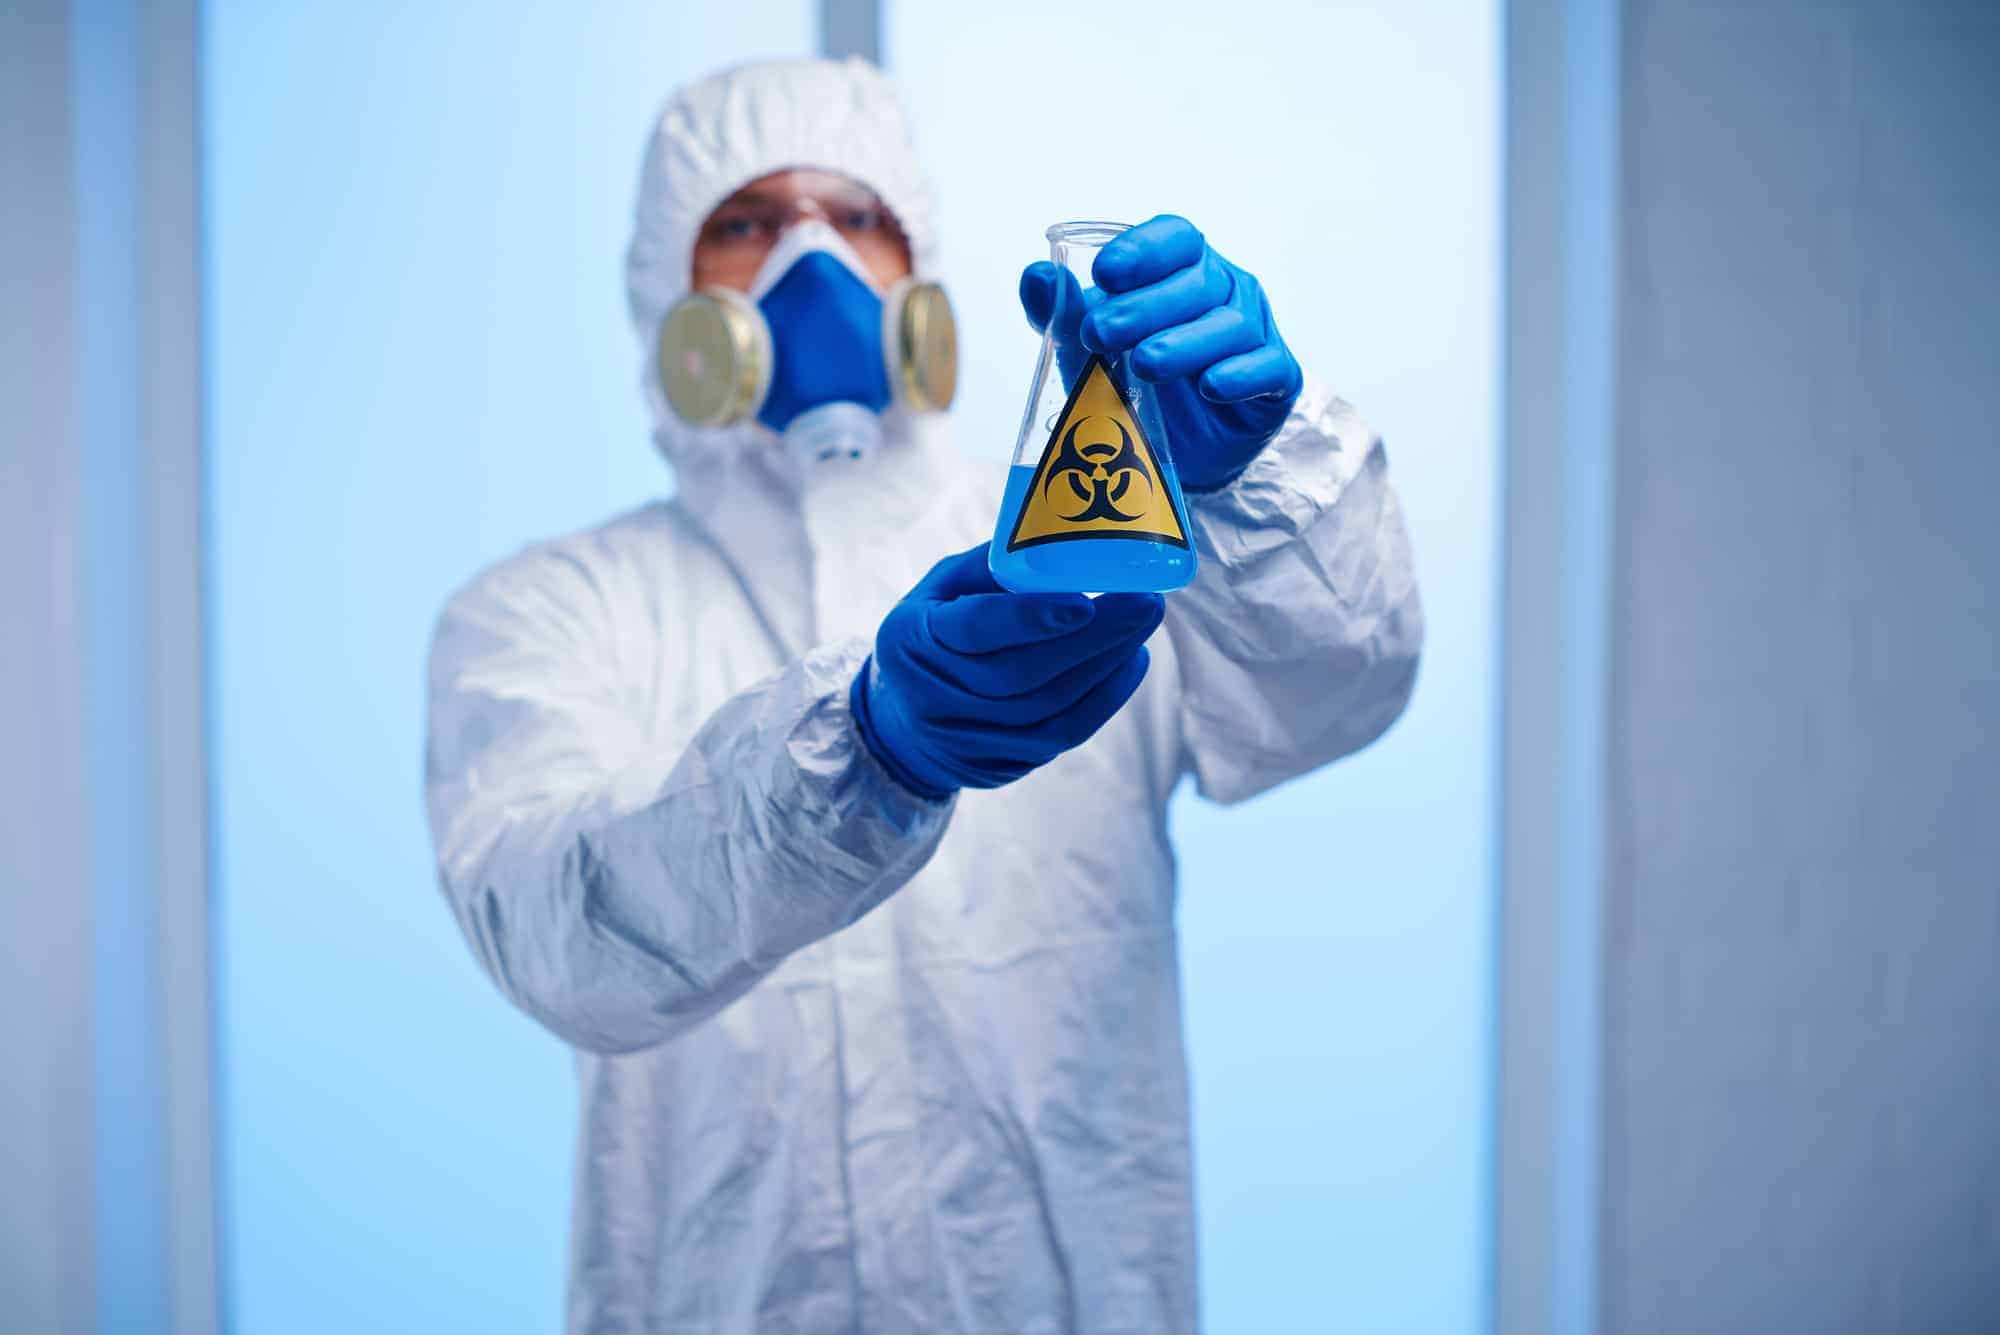 Chemist in protective outfit handling glyphosate